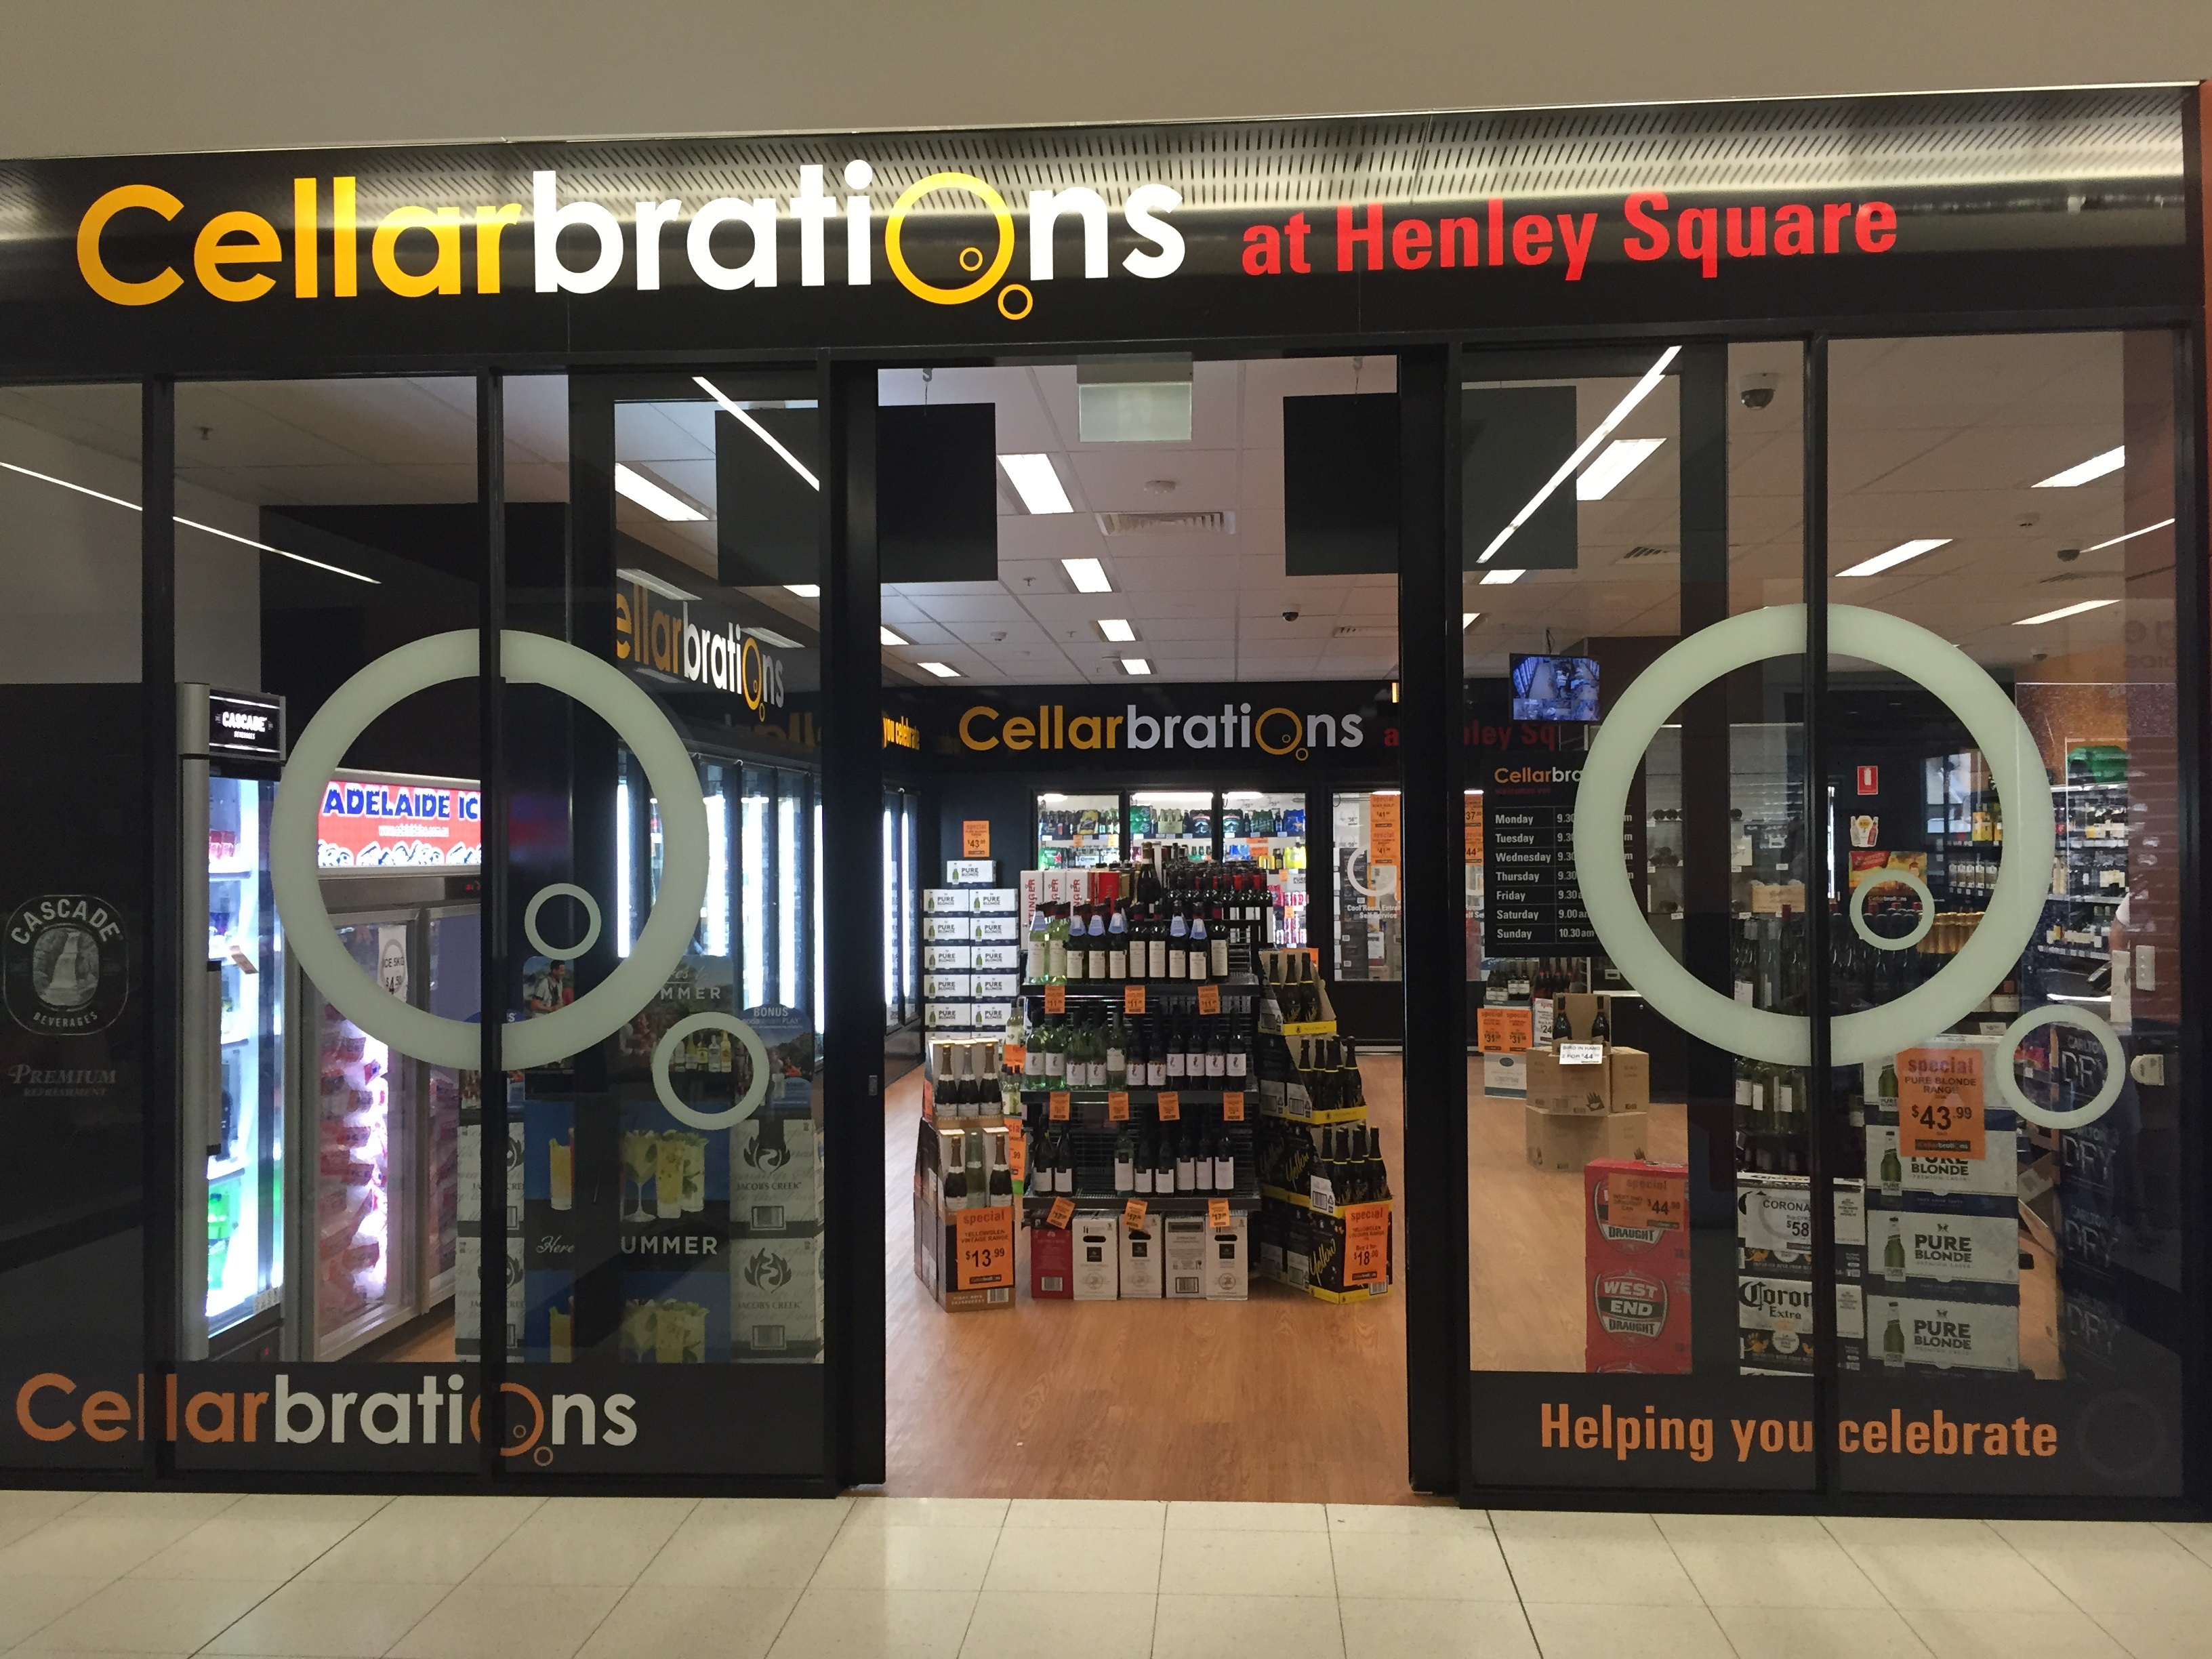 Cellarbrations Henley Square facebook images